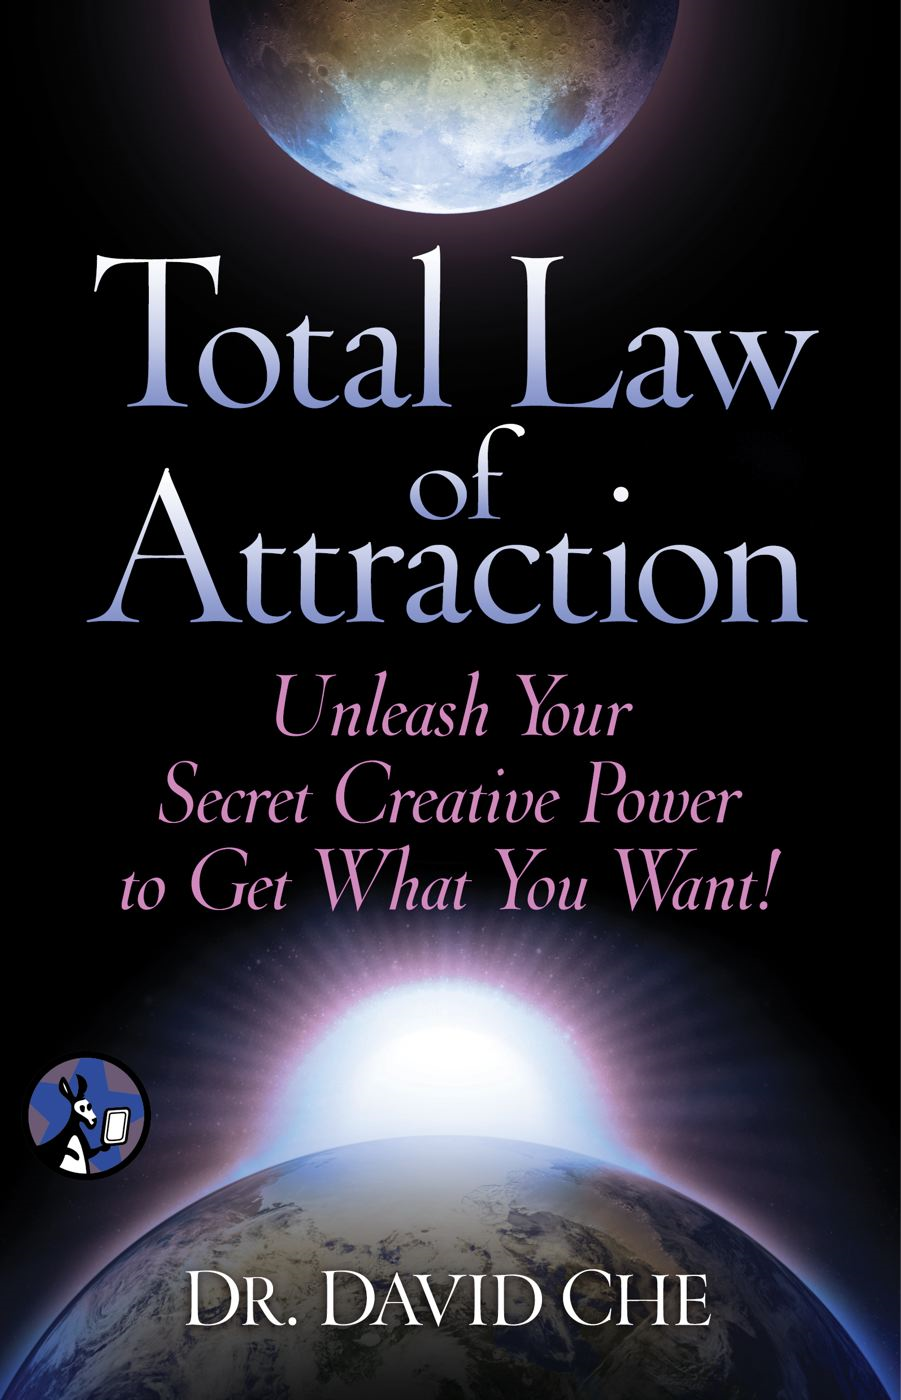 Total Law of Attraction Unleash Your Secret Creative Power To Get What You Want!